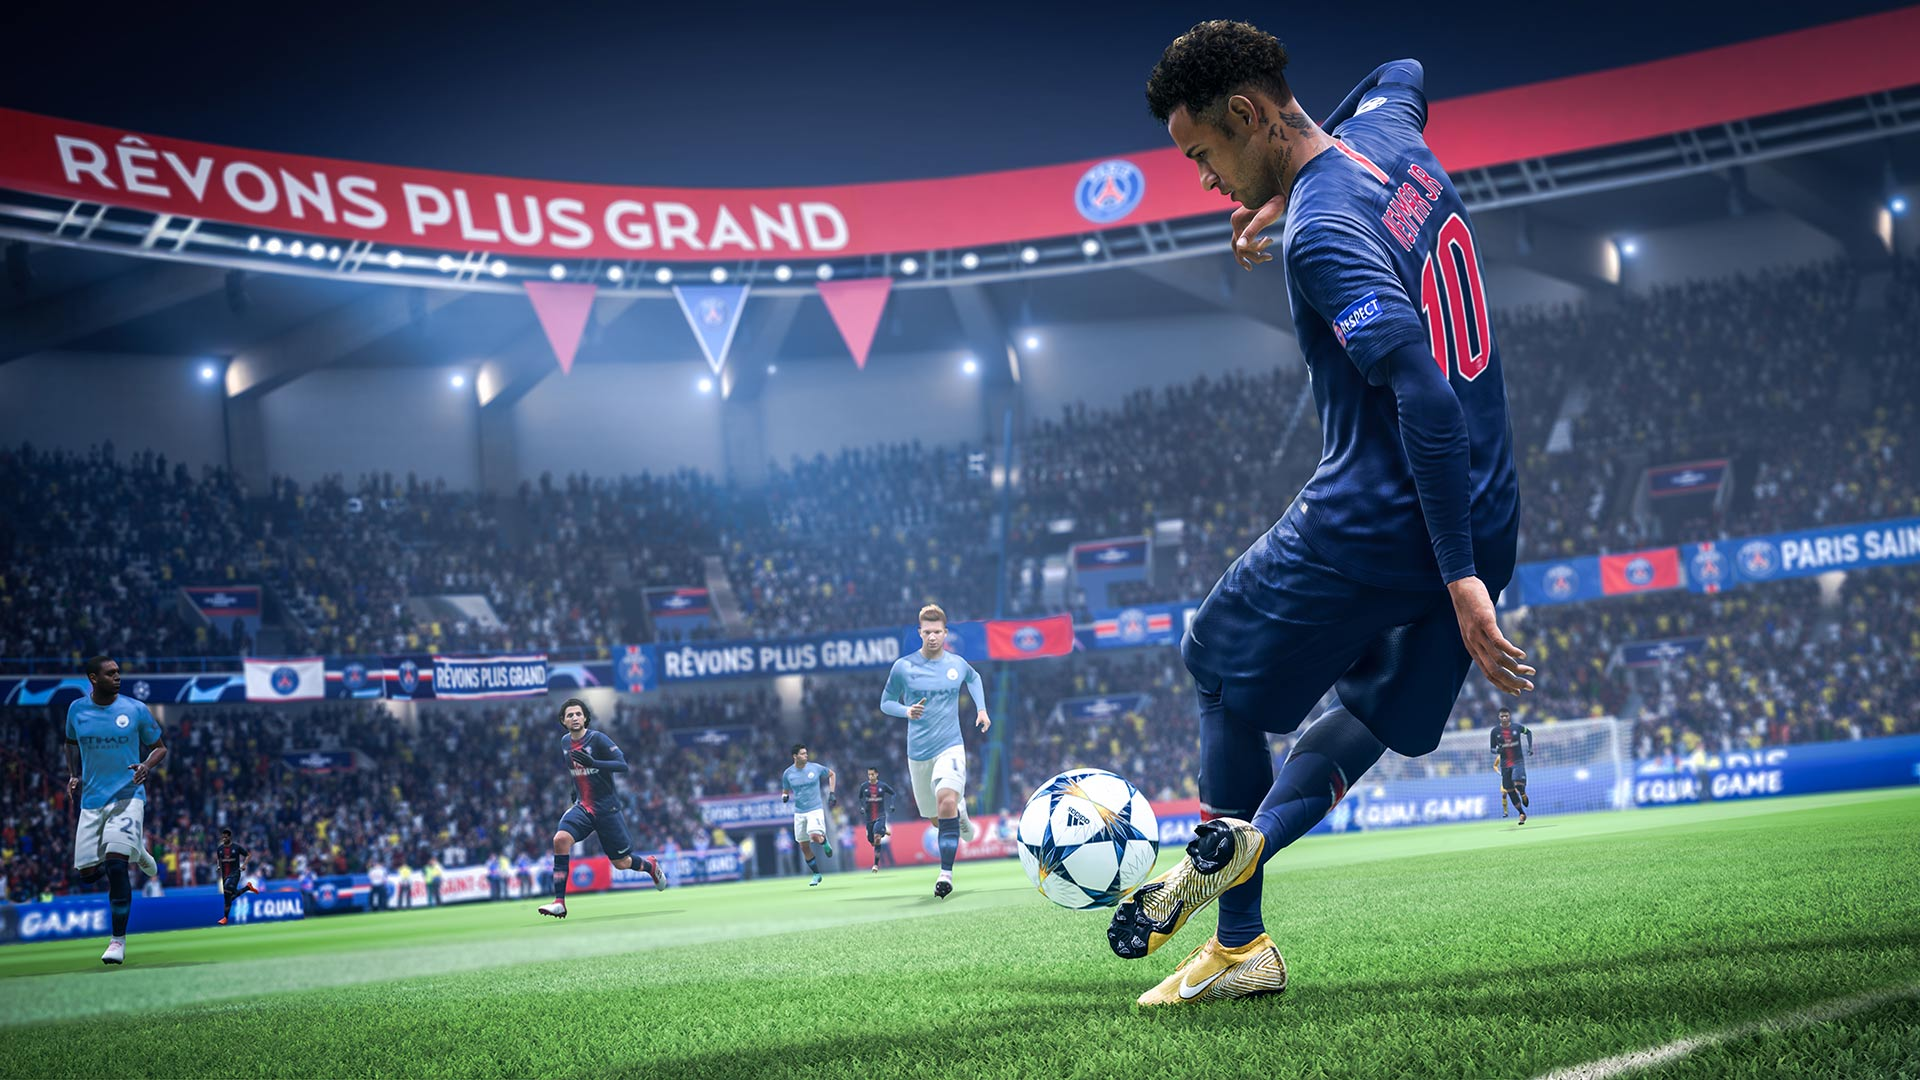 Fifa 19 On Ps4 Official Playstationstore Uk Playstation Network Card 800000 Idr Digital Code Description